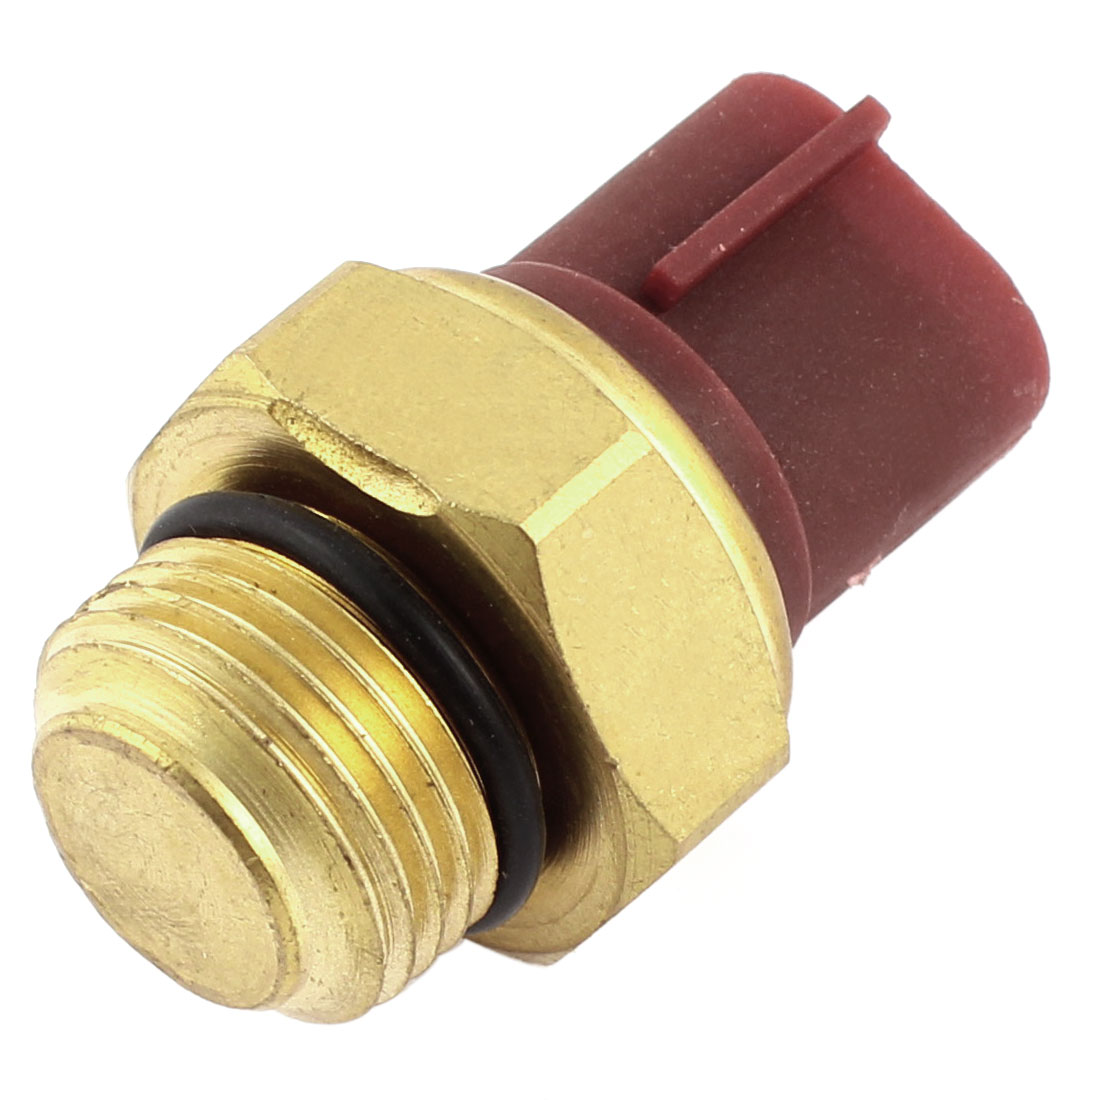 Motorcycle Water Temp Engine Coolant Temperature Sensor Spare Part for Suzuki